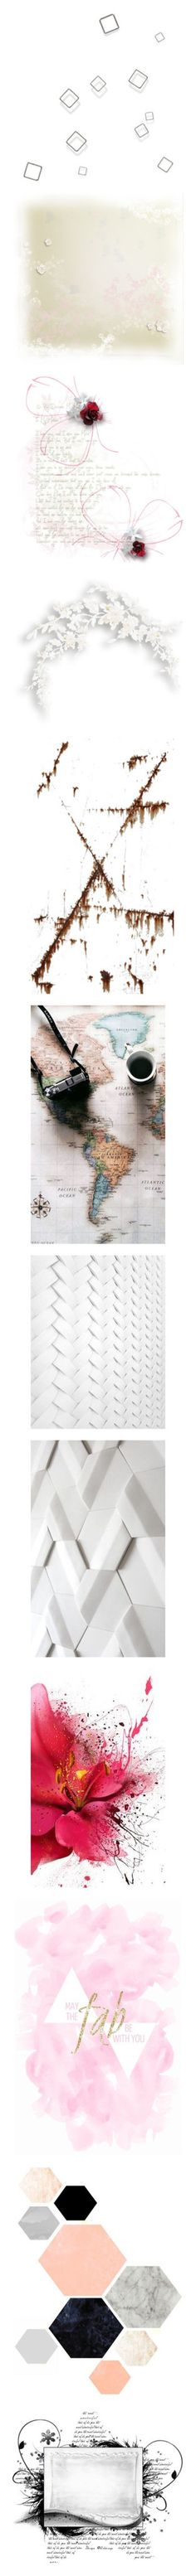 """""""Backgrounds"""" by borislava-zo3bi ❤ liked on Polyvore featuring fillers, effects, backgrounds, overlays, special effects, text, quotes, texture, embellishment and borders"""